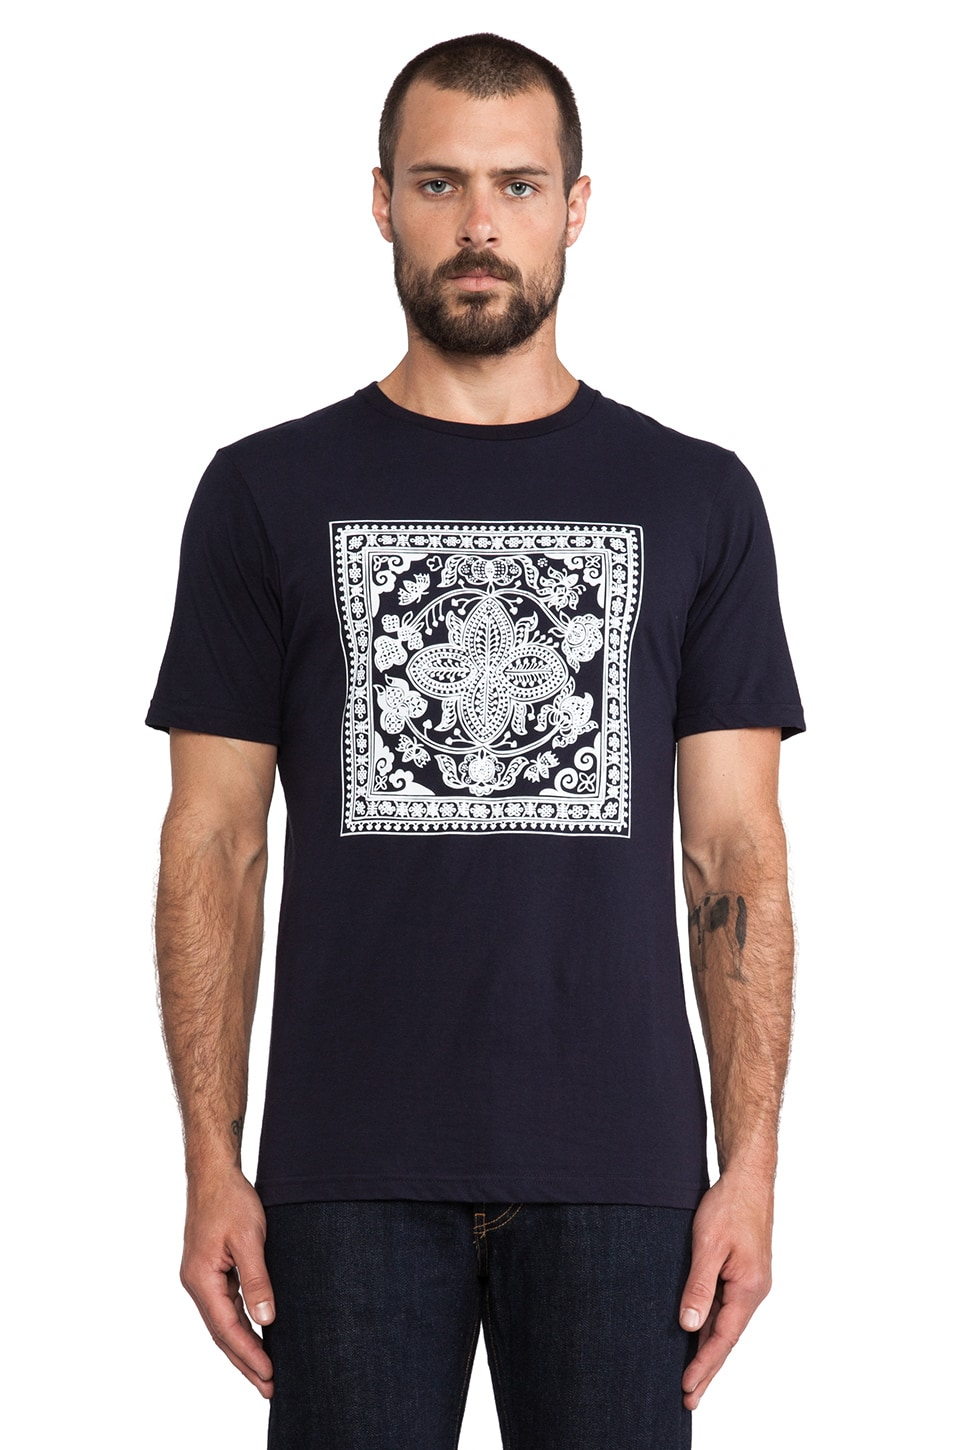 United Stock Dry Goods Square Batik Print T-Shirt in Navy